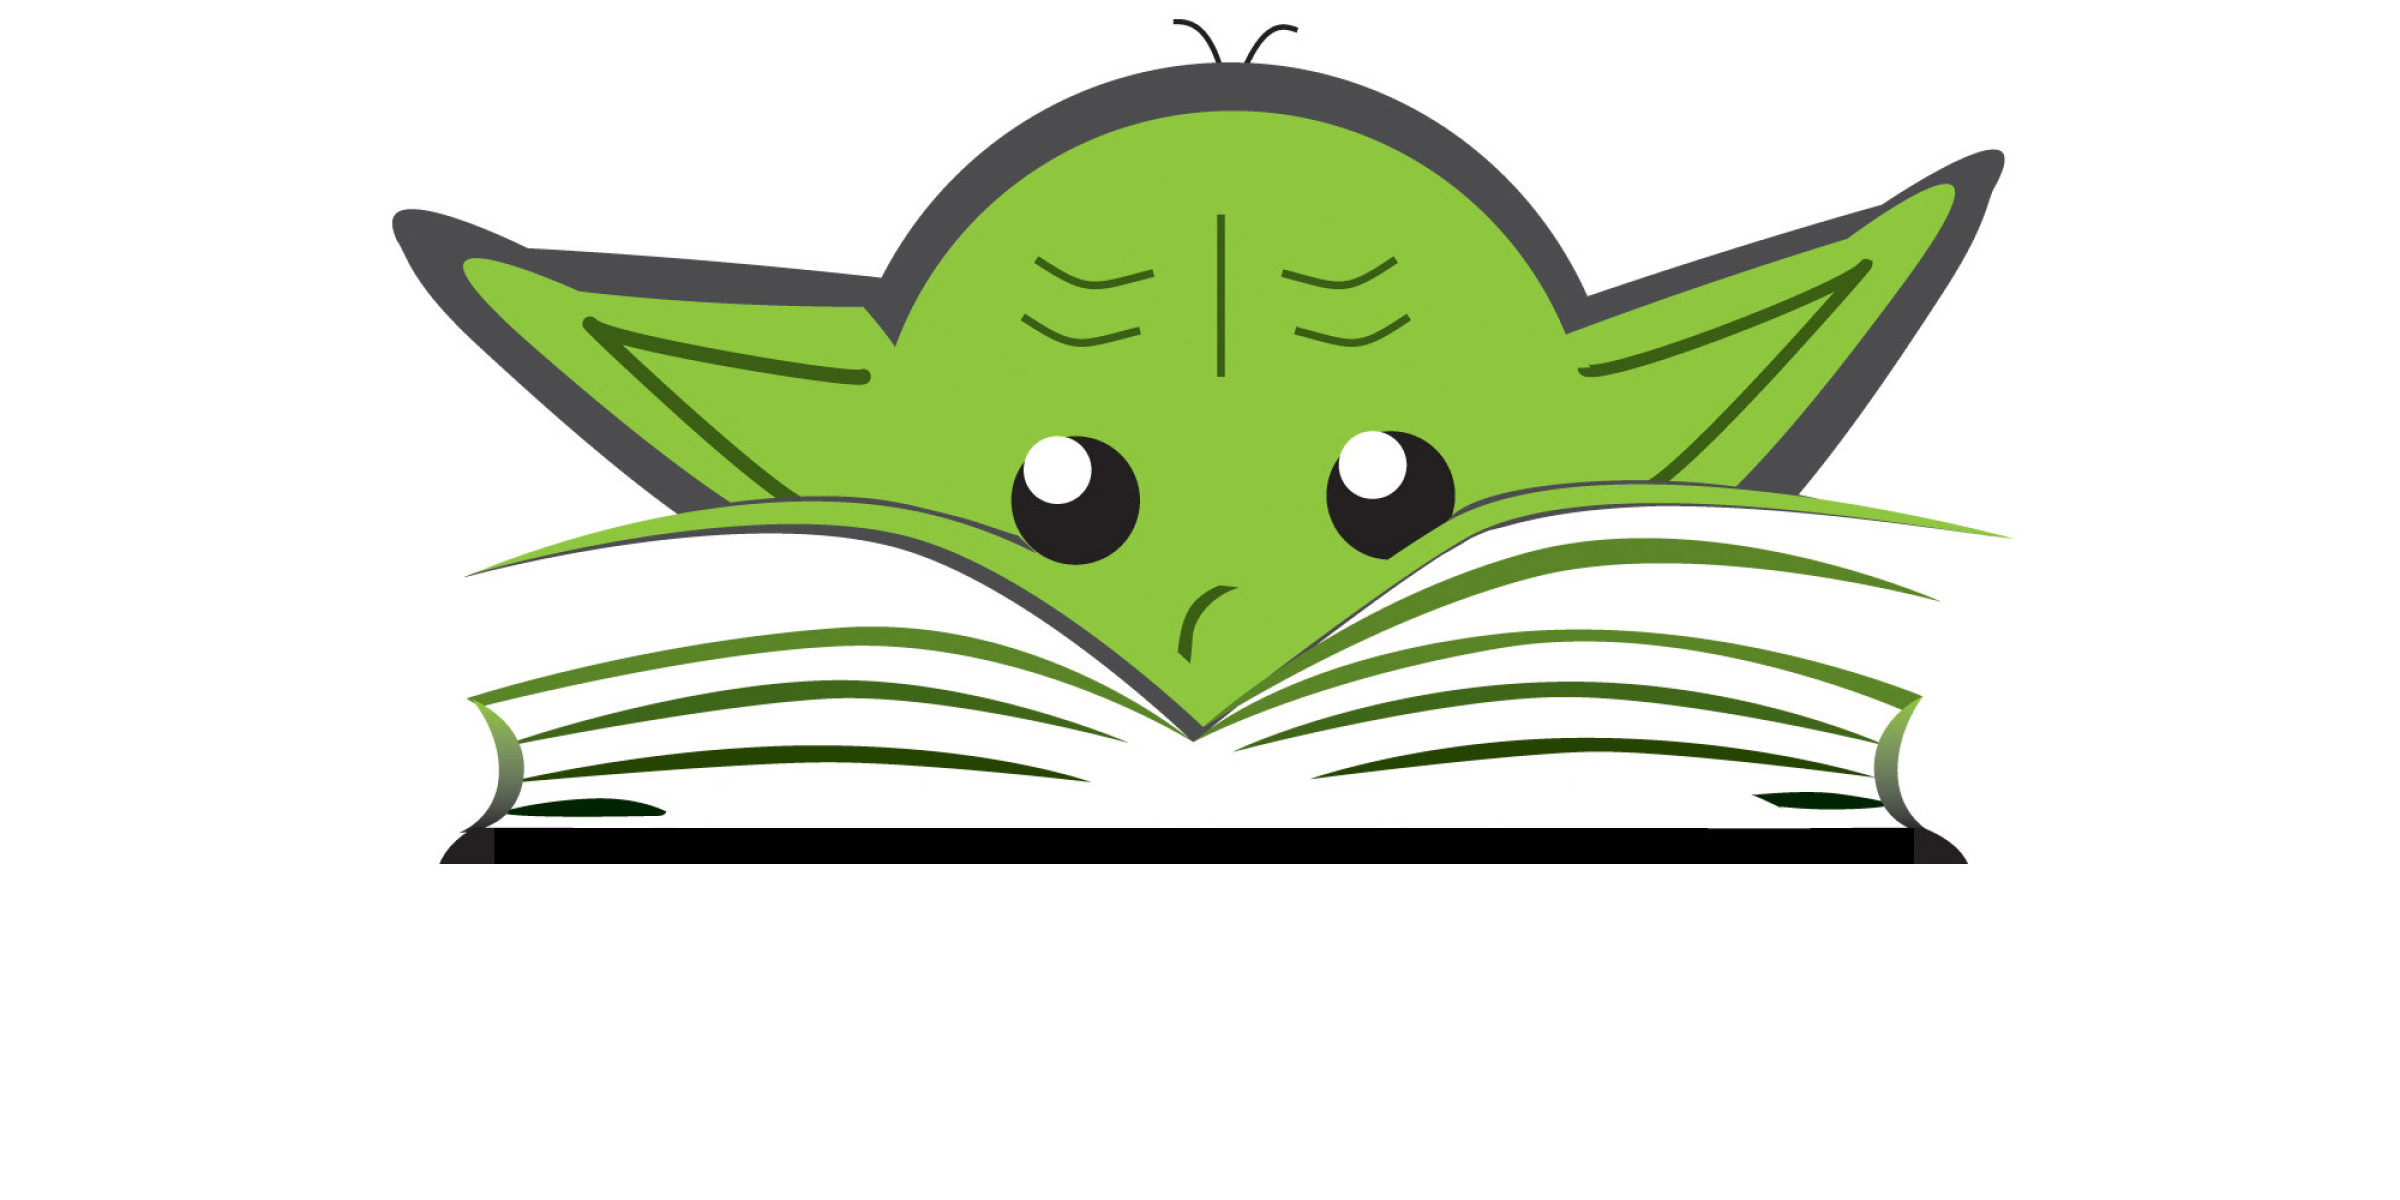 Yoda clipart star wars. Reads day strikes back